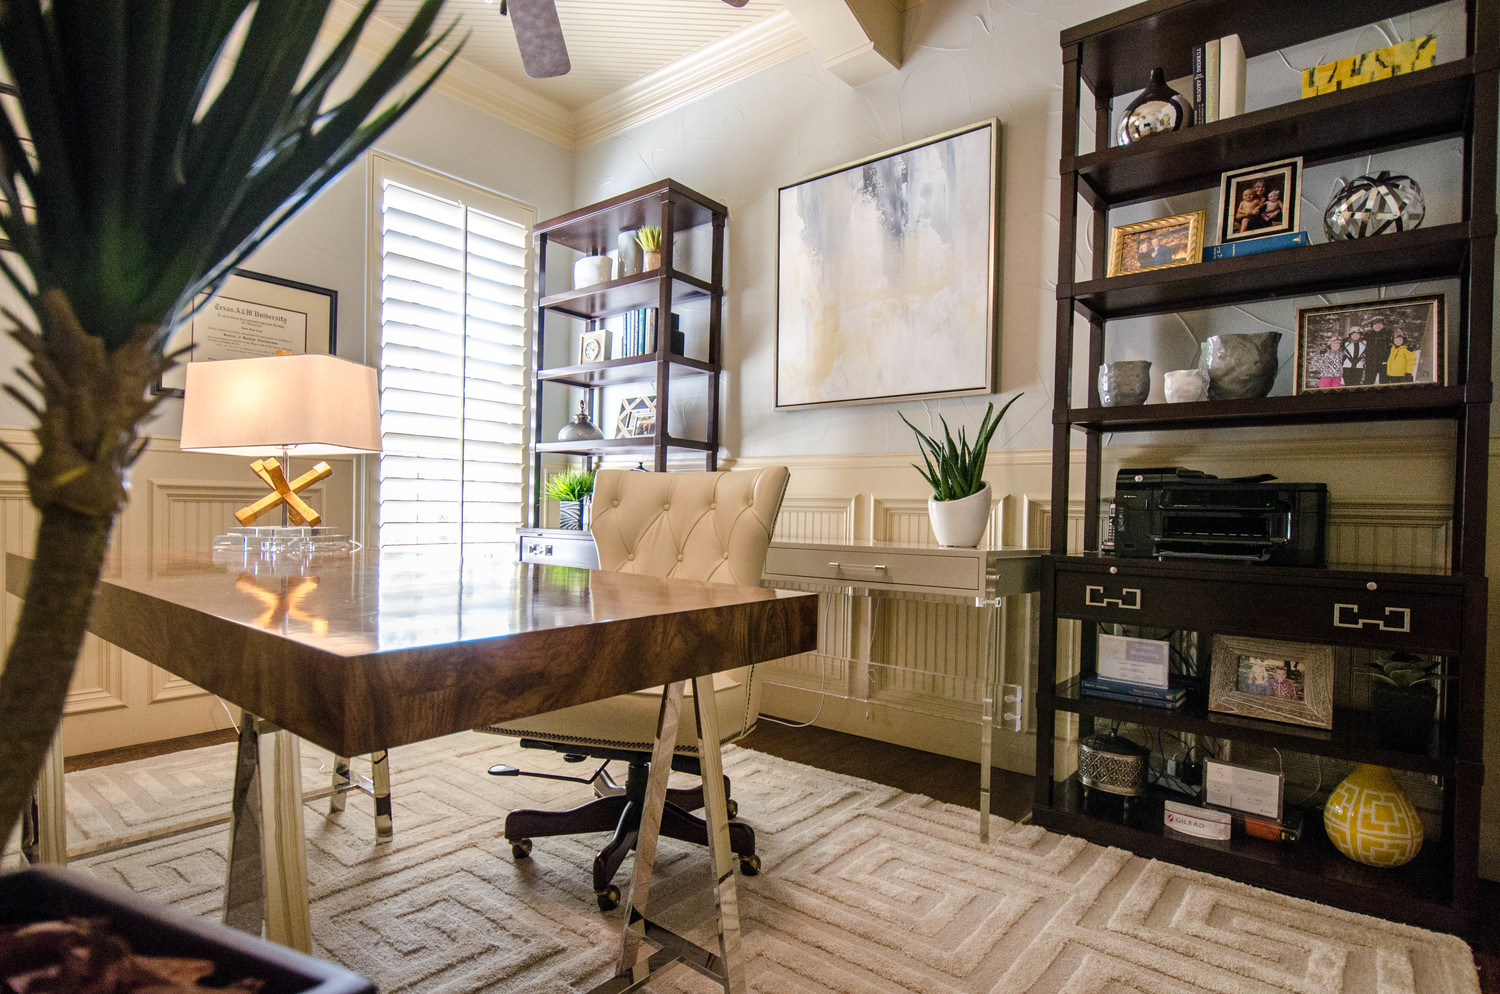 Two desks in a modern home office